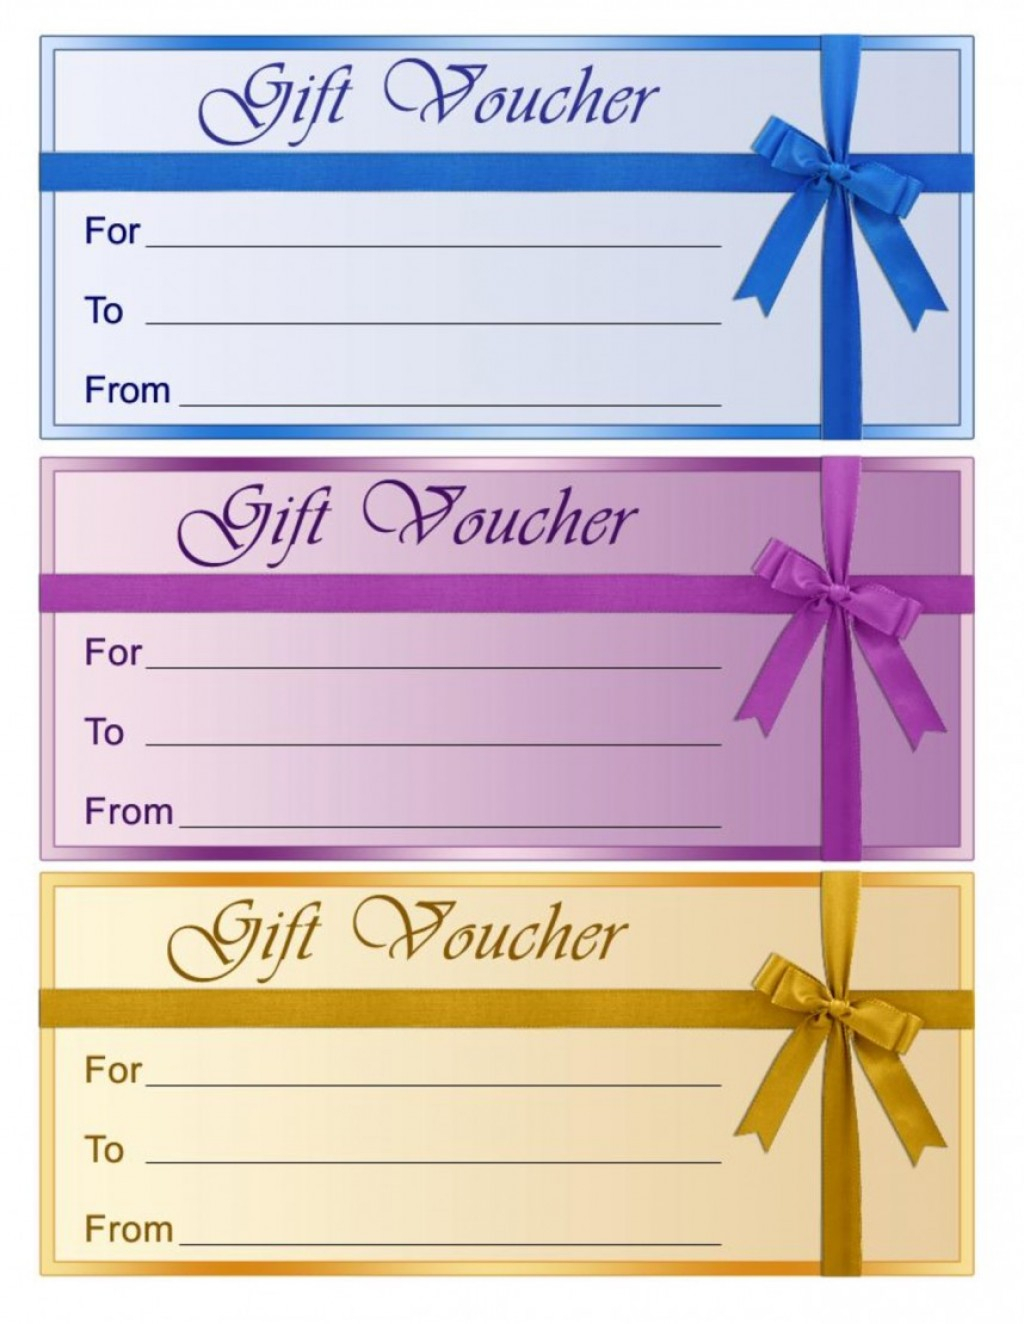 Printable Gift Certificate Template Free  Floss Papers In Printable Gift Certificates Templates Free